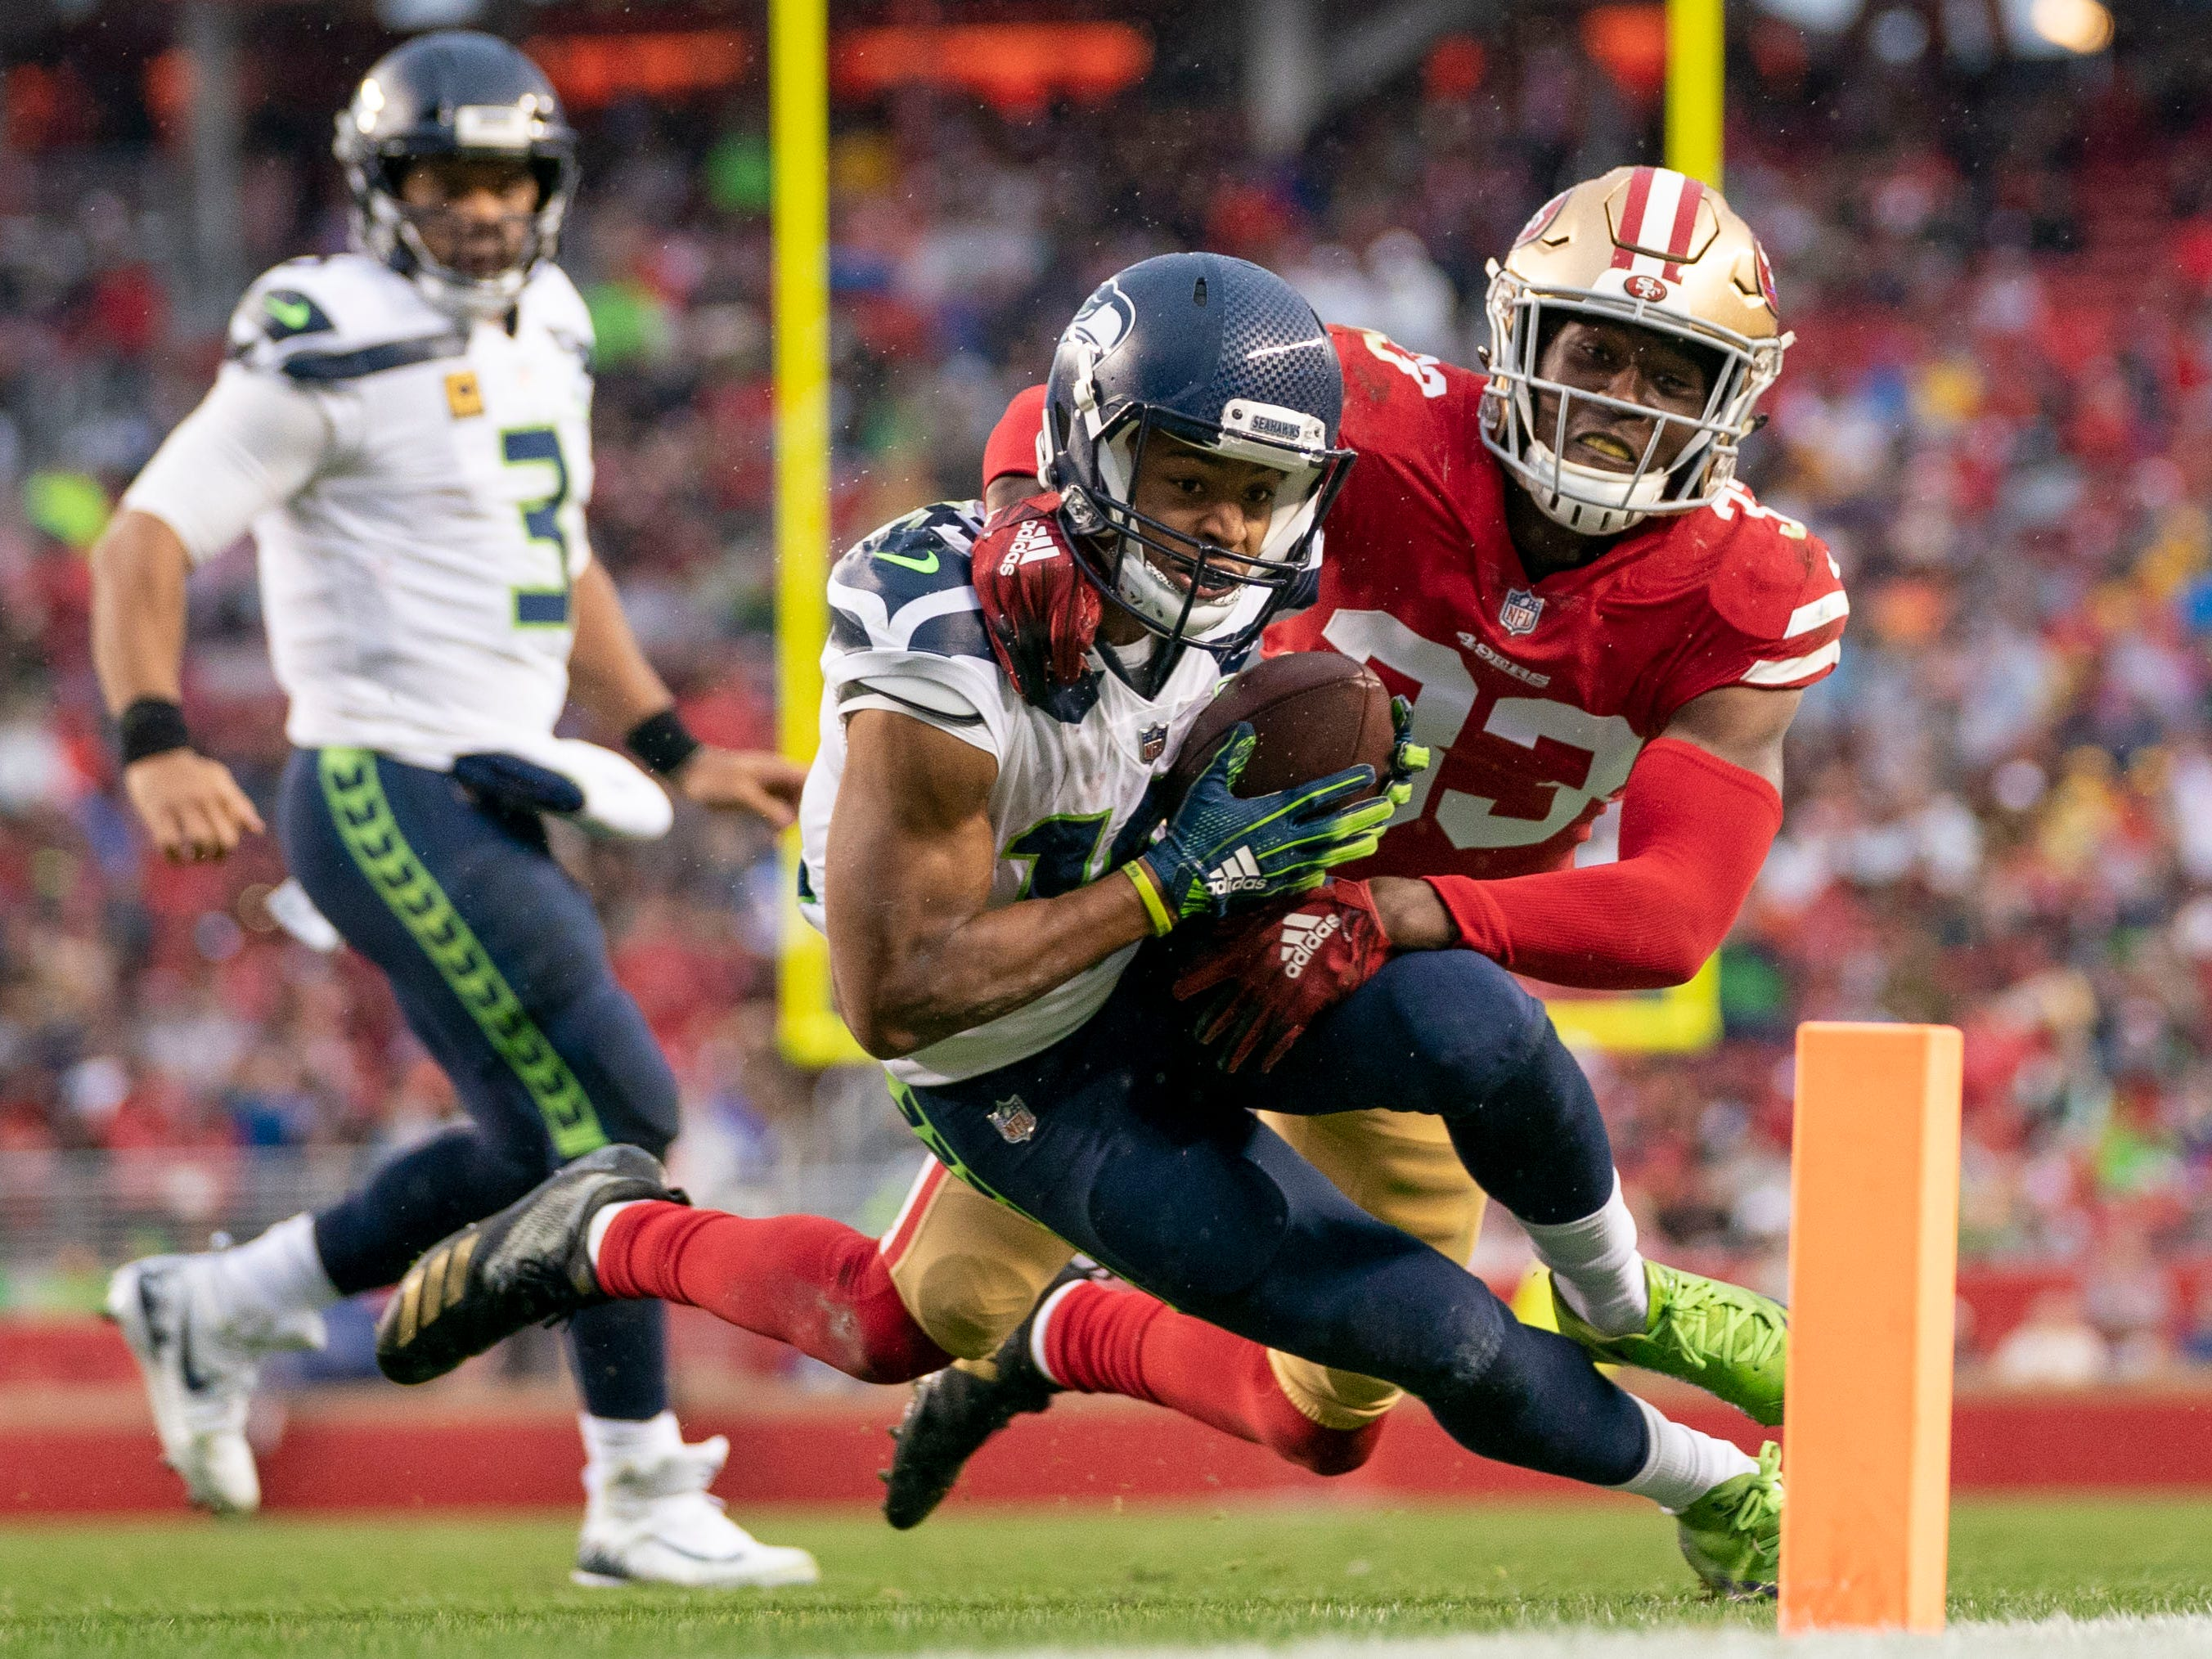 Week 15: Seattle Seahawks wide receiver Tyler Lockett is tackled by San Francisco 49ers defensive back Tarvarius Moore during the third quarter at Levi's Stadium. The 49ers won the game, 26-23, in overtime.